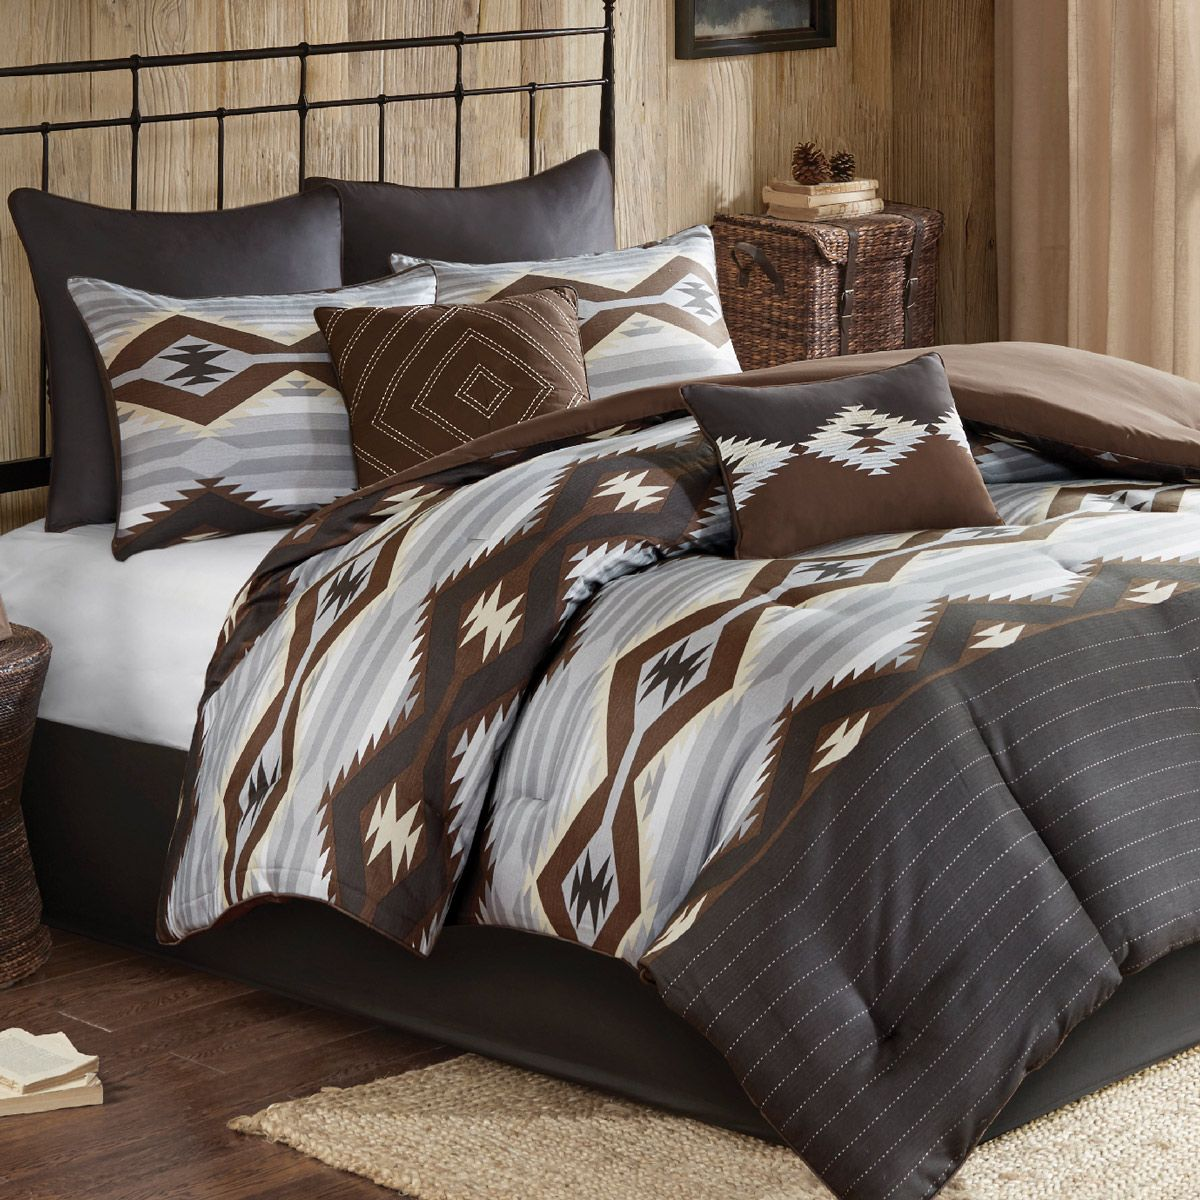 Slate River Oversized Bed Set - Cal. King